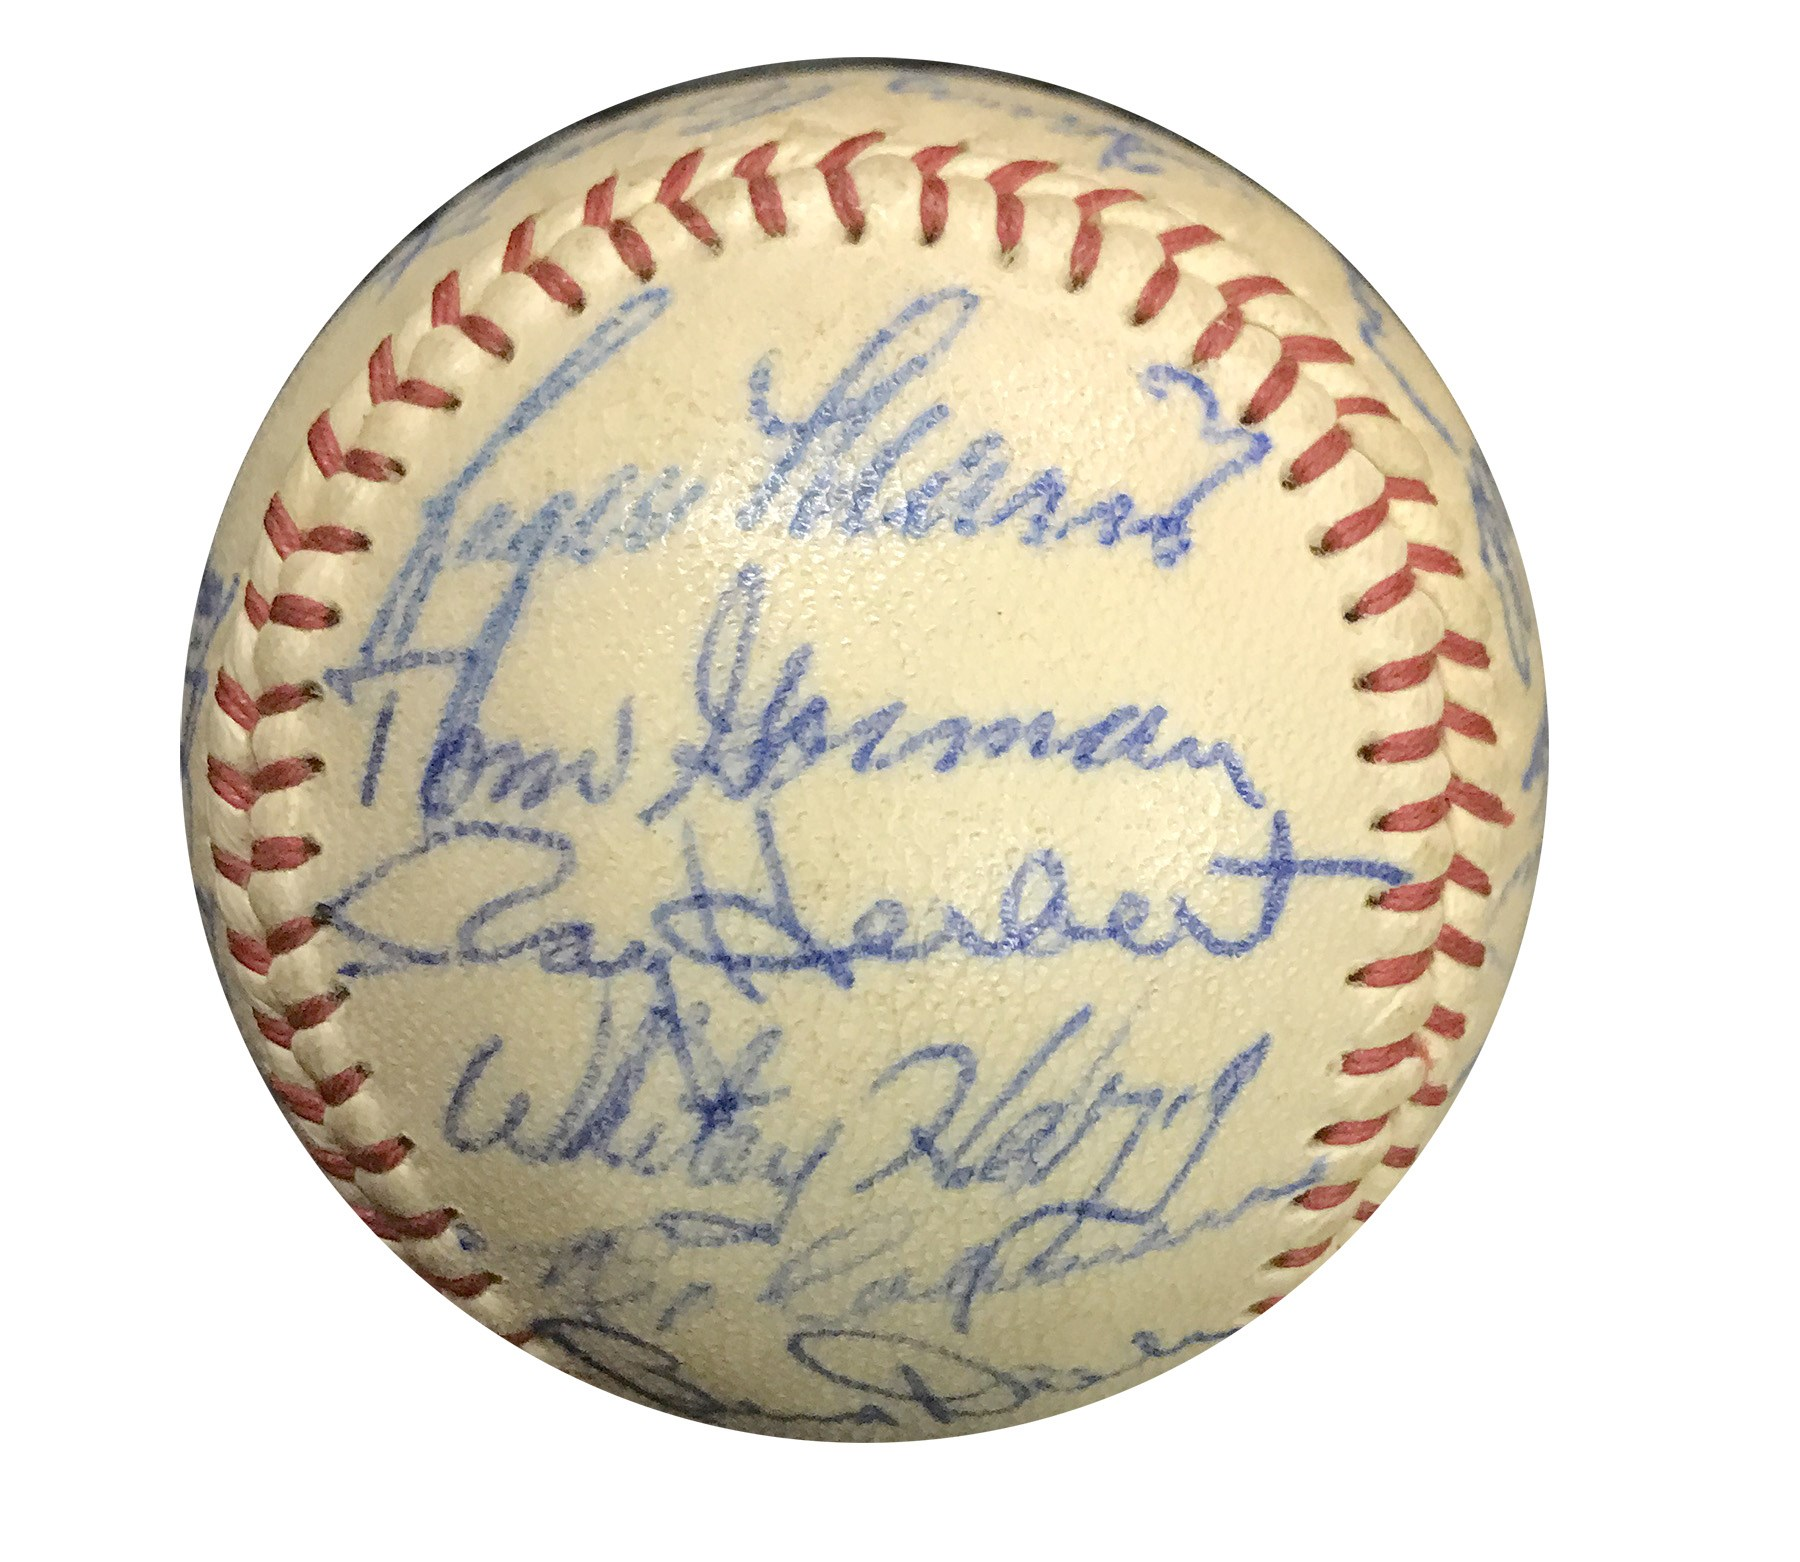 The John O'connor Signed Baseball Collection - Leland's Classic